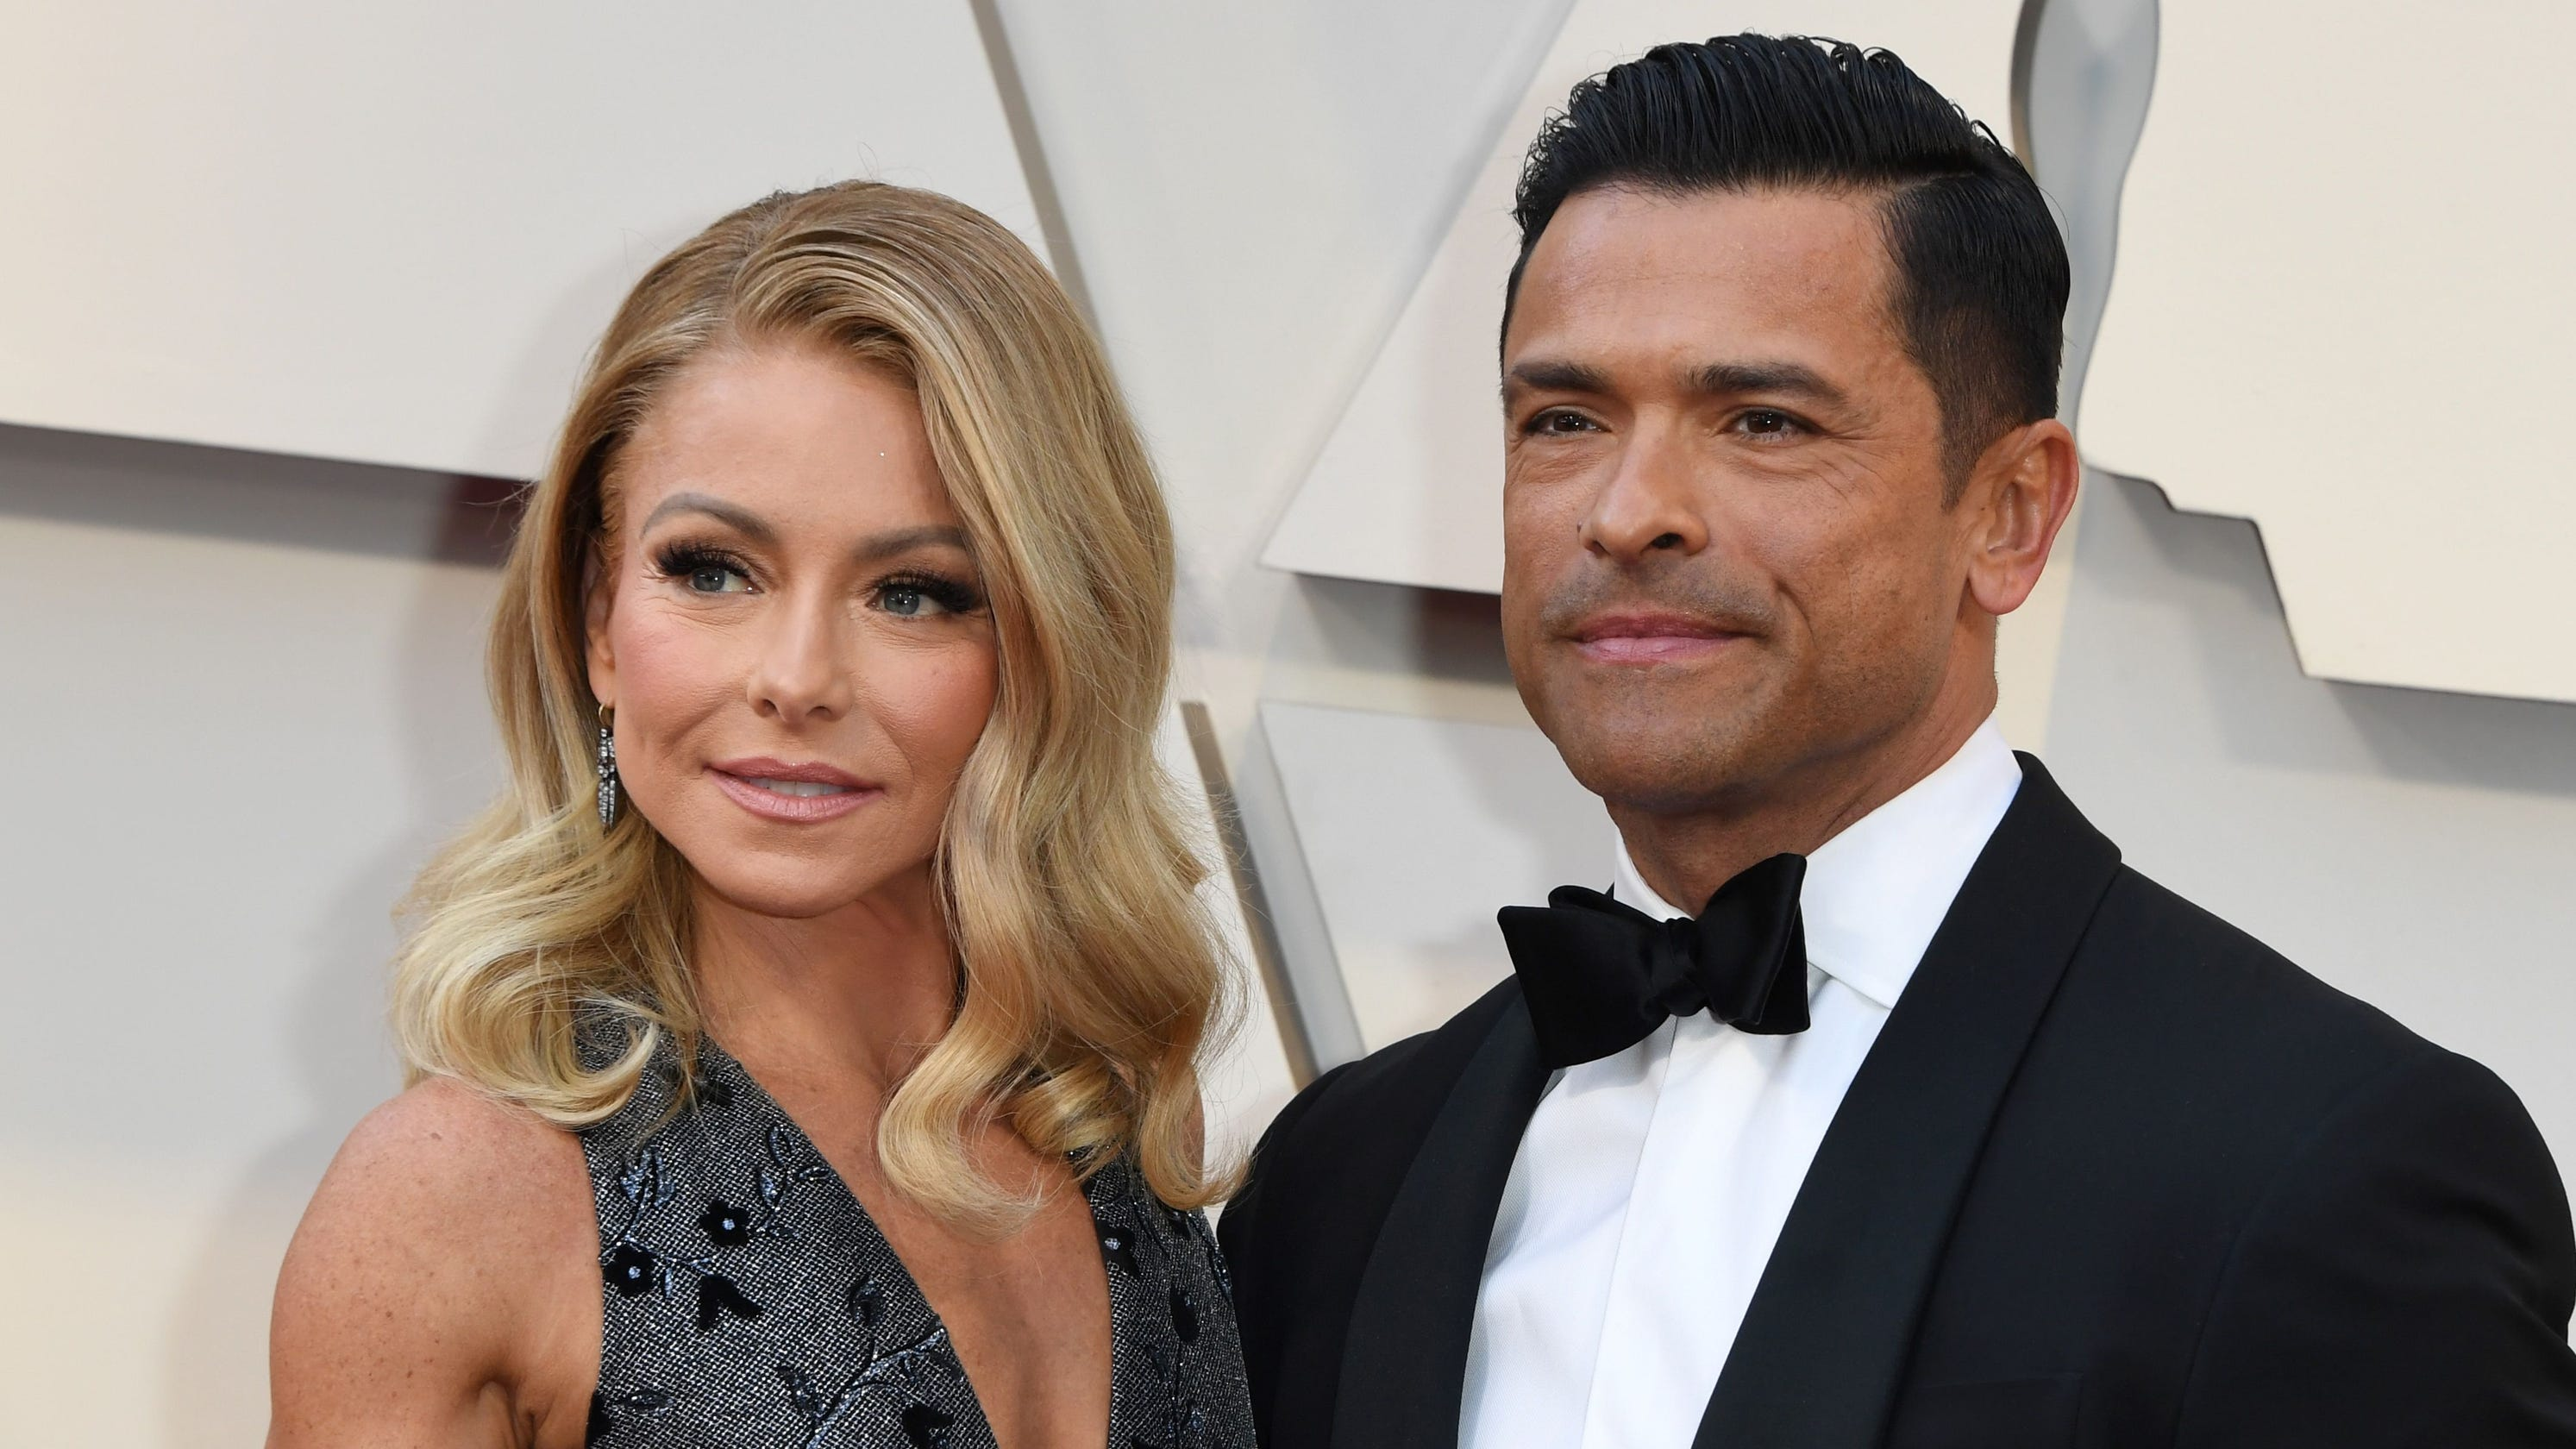 Kelly Ripa shares Mark Consuelos honeymoon picture 23 years later